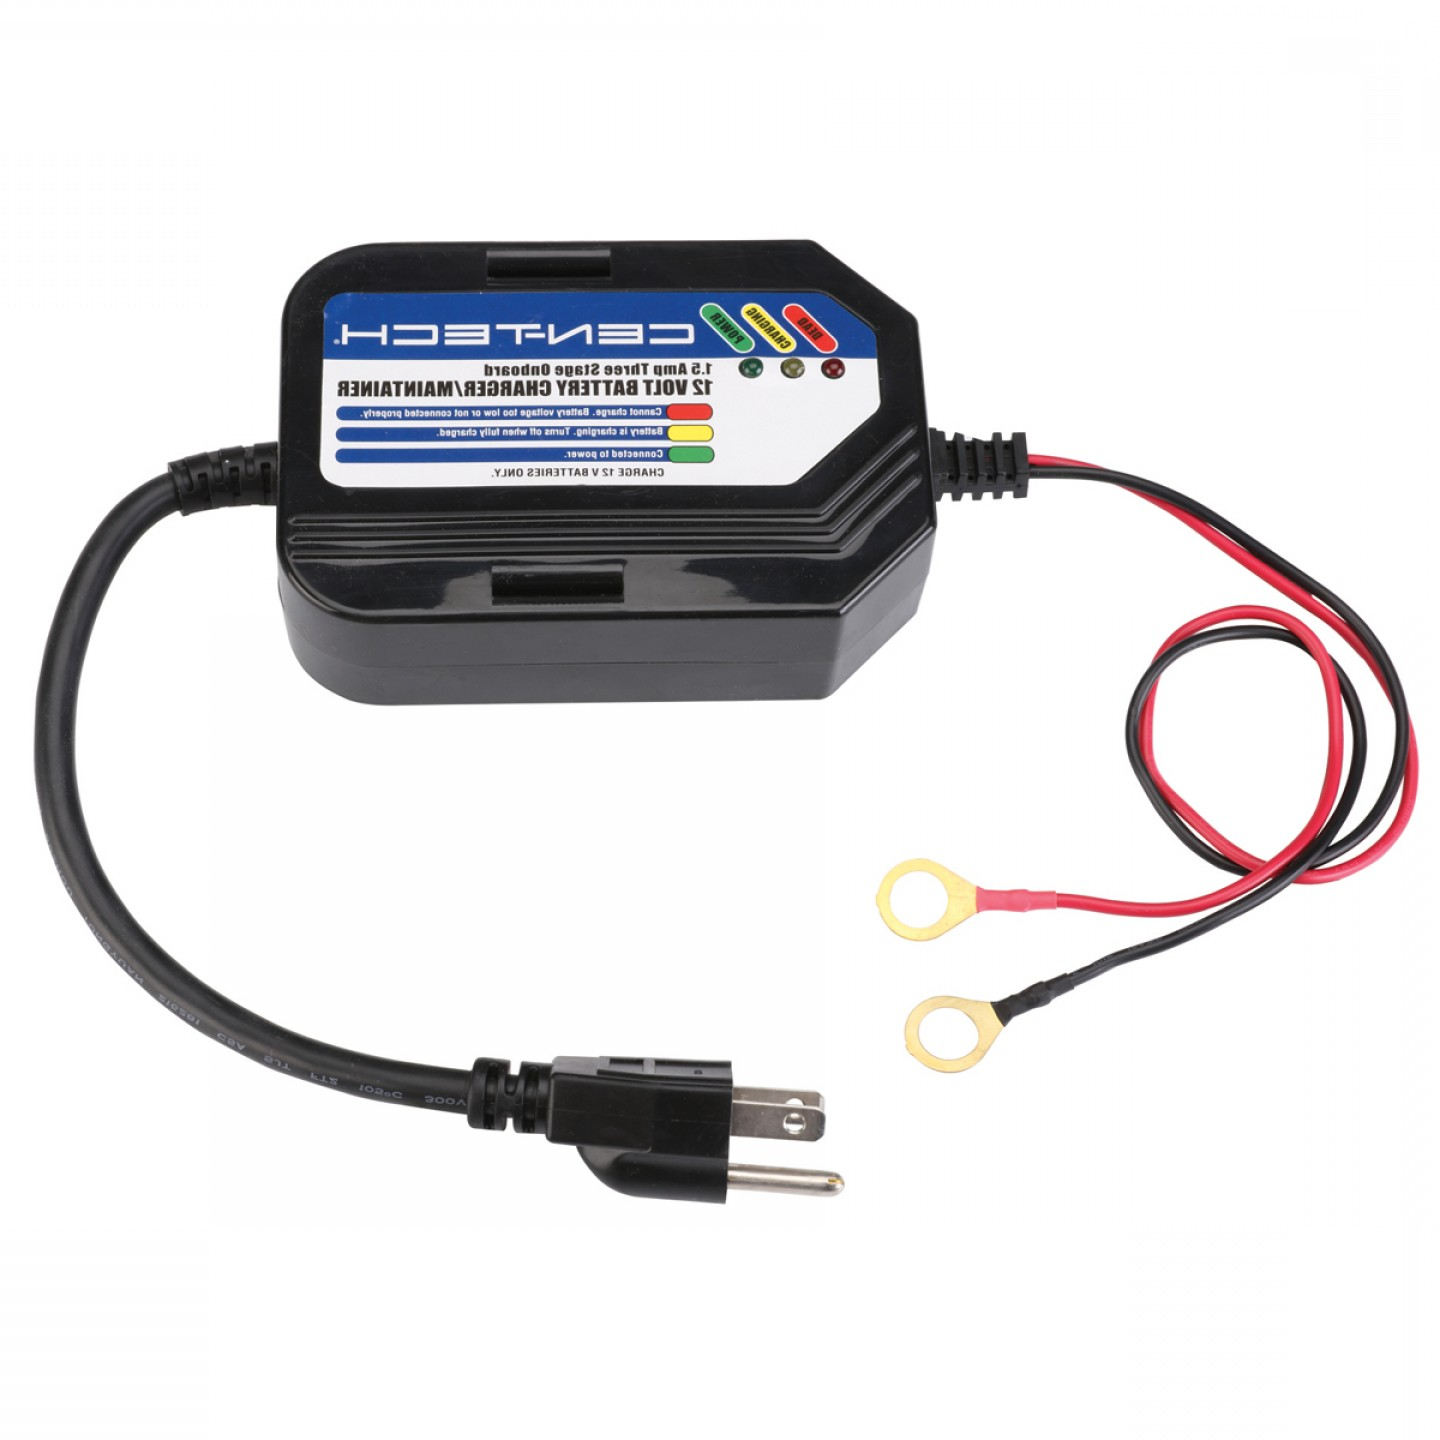 Vector Smart Battery Charger Manual: Amp Three Stage Onboard Battery Charger Maintainer